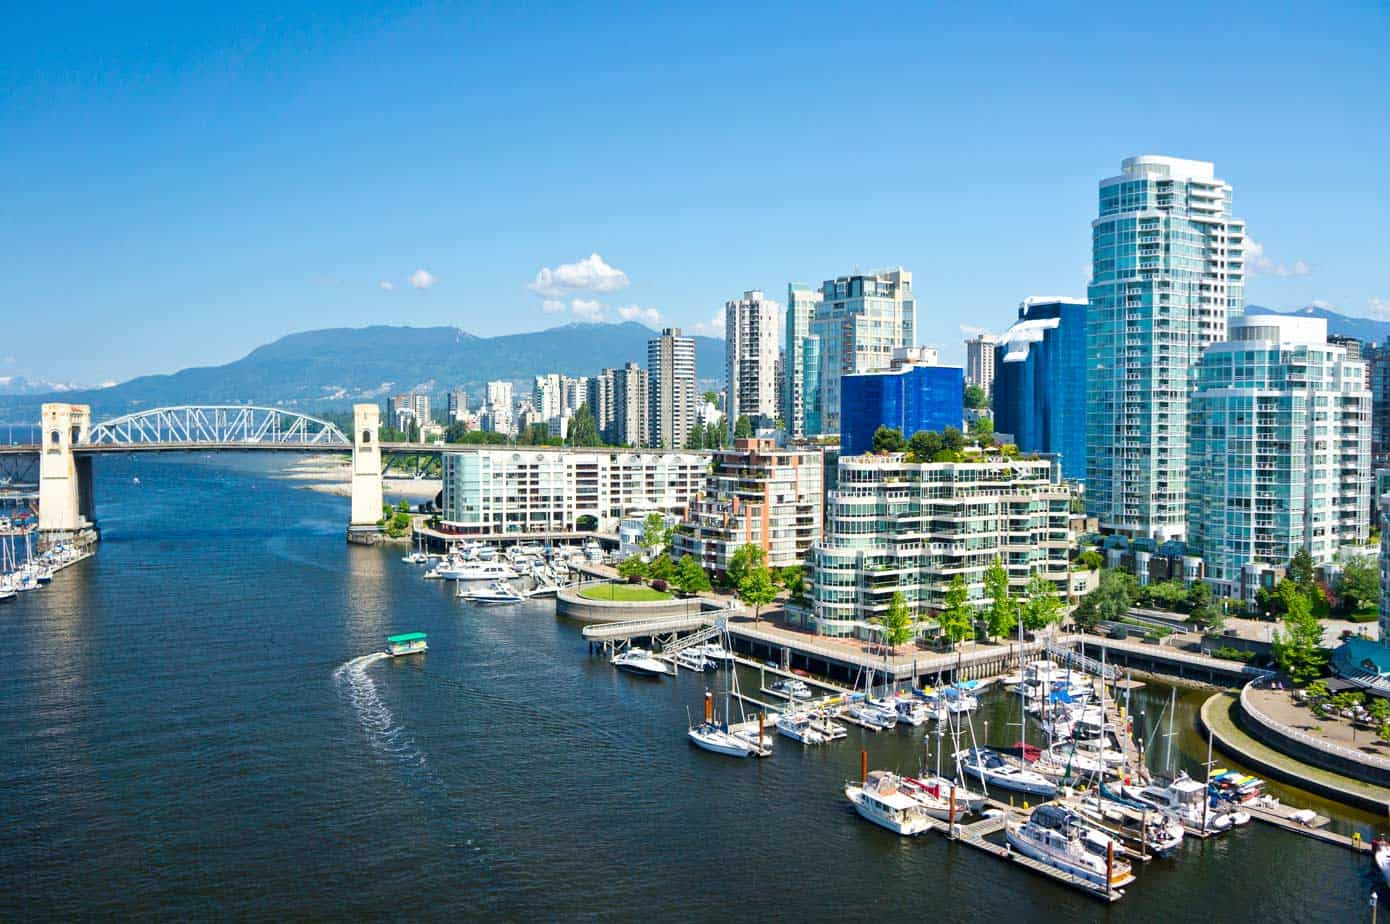 Beautiful view of the Vancouver skyline in British Columbia, Canada.